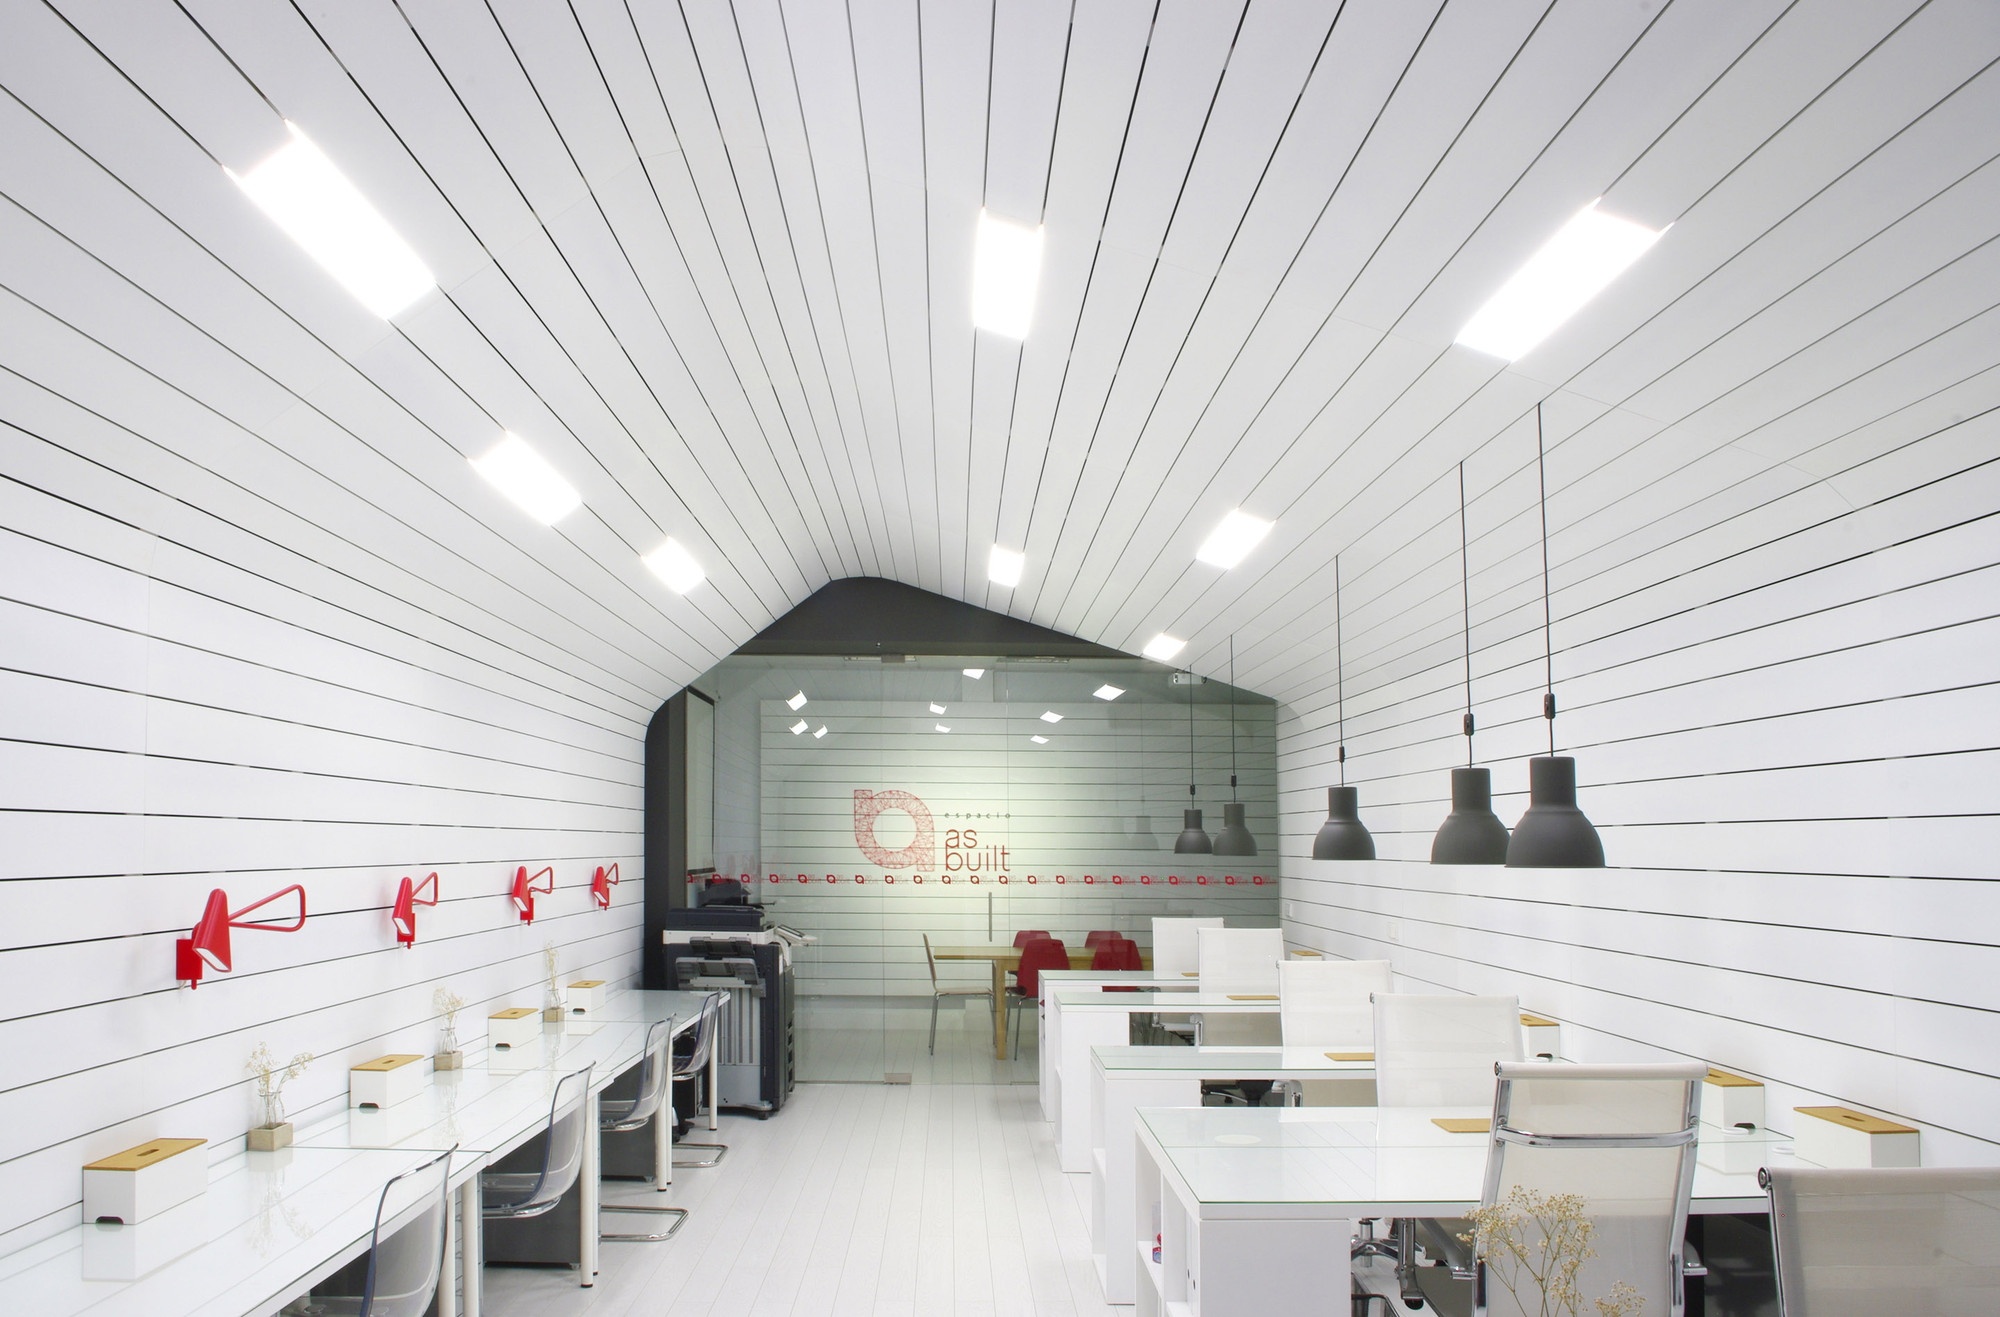 Office for Architecture Studio and Coworking Space As Built